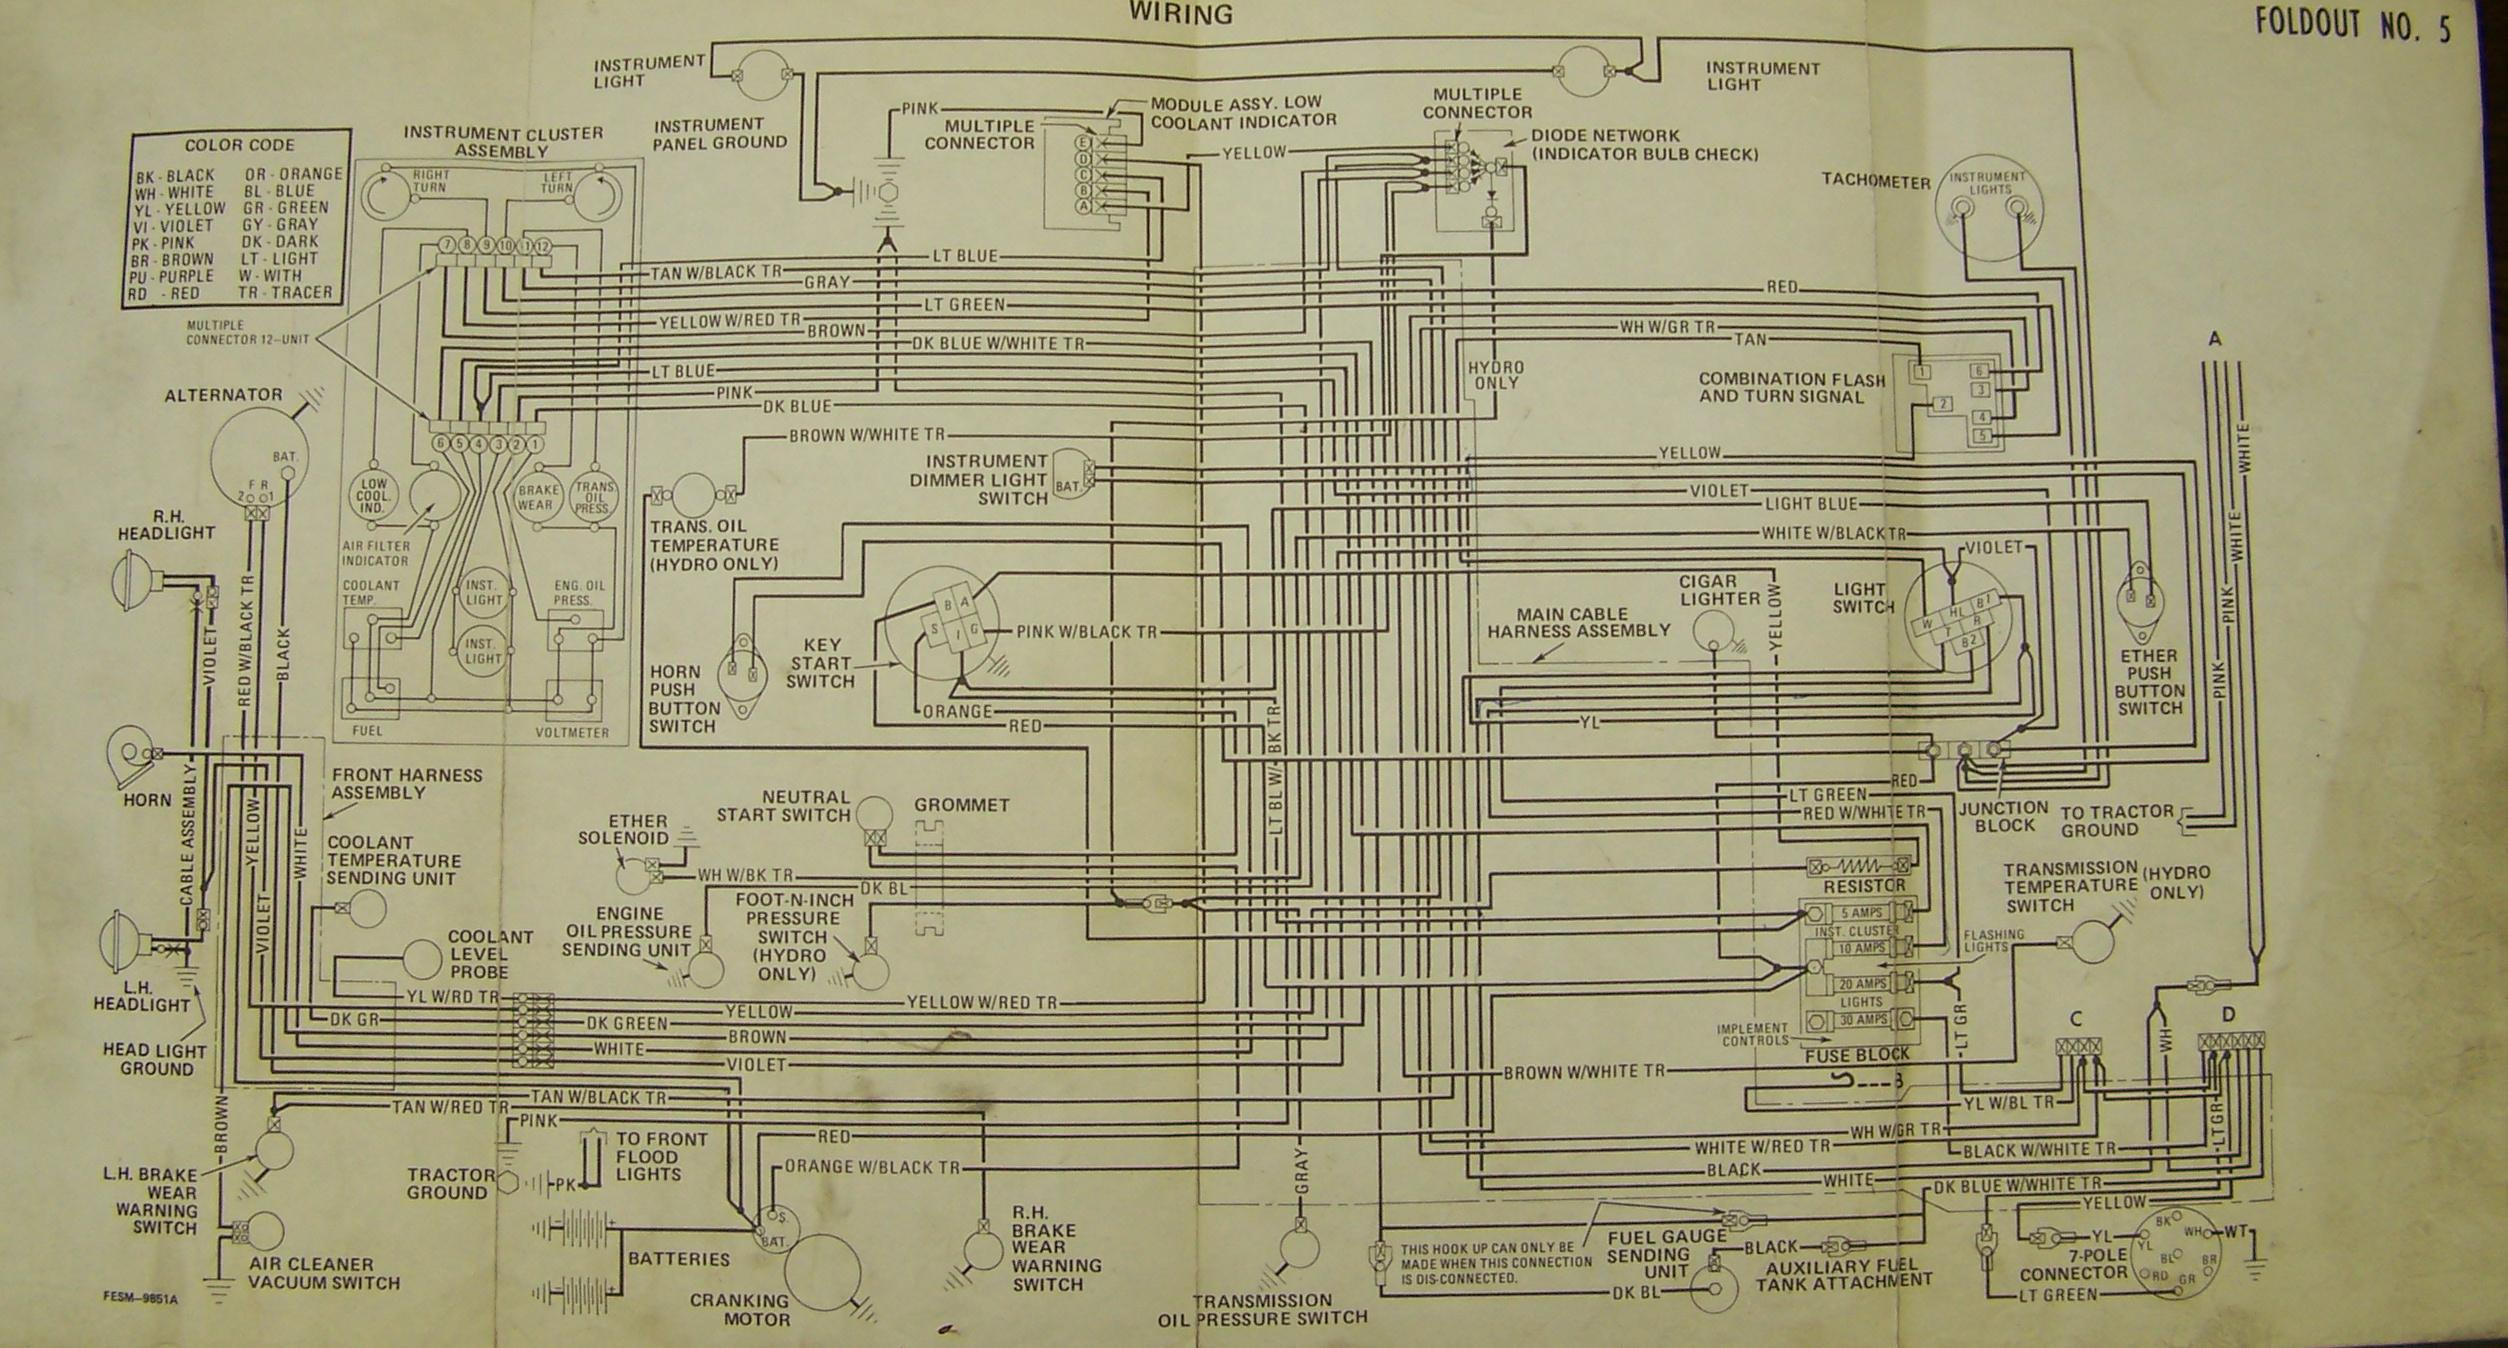 carter & gruenewald co. inc. - ih-farmall tractor ... case international tractor wiring diagram 448 case garden tractor wiring diagram